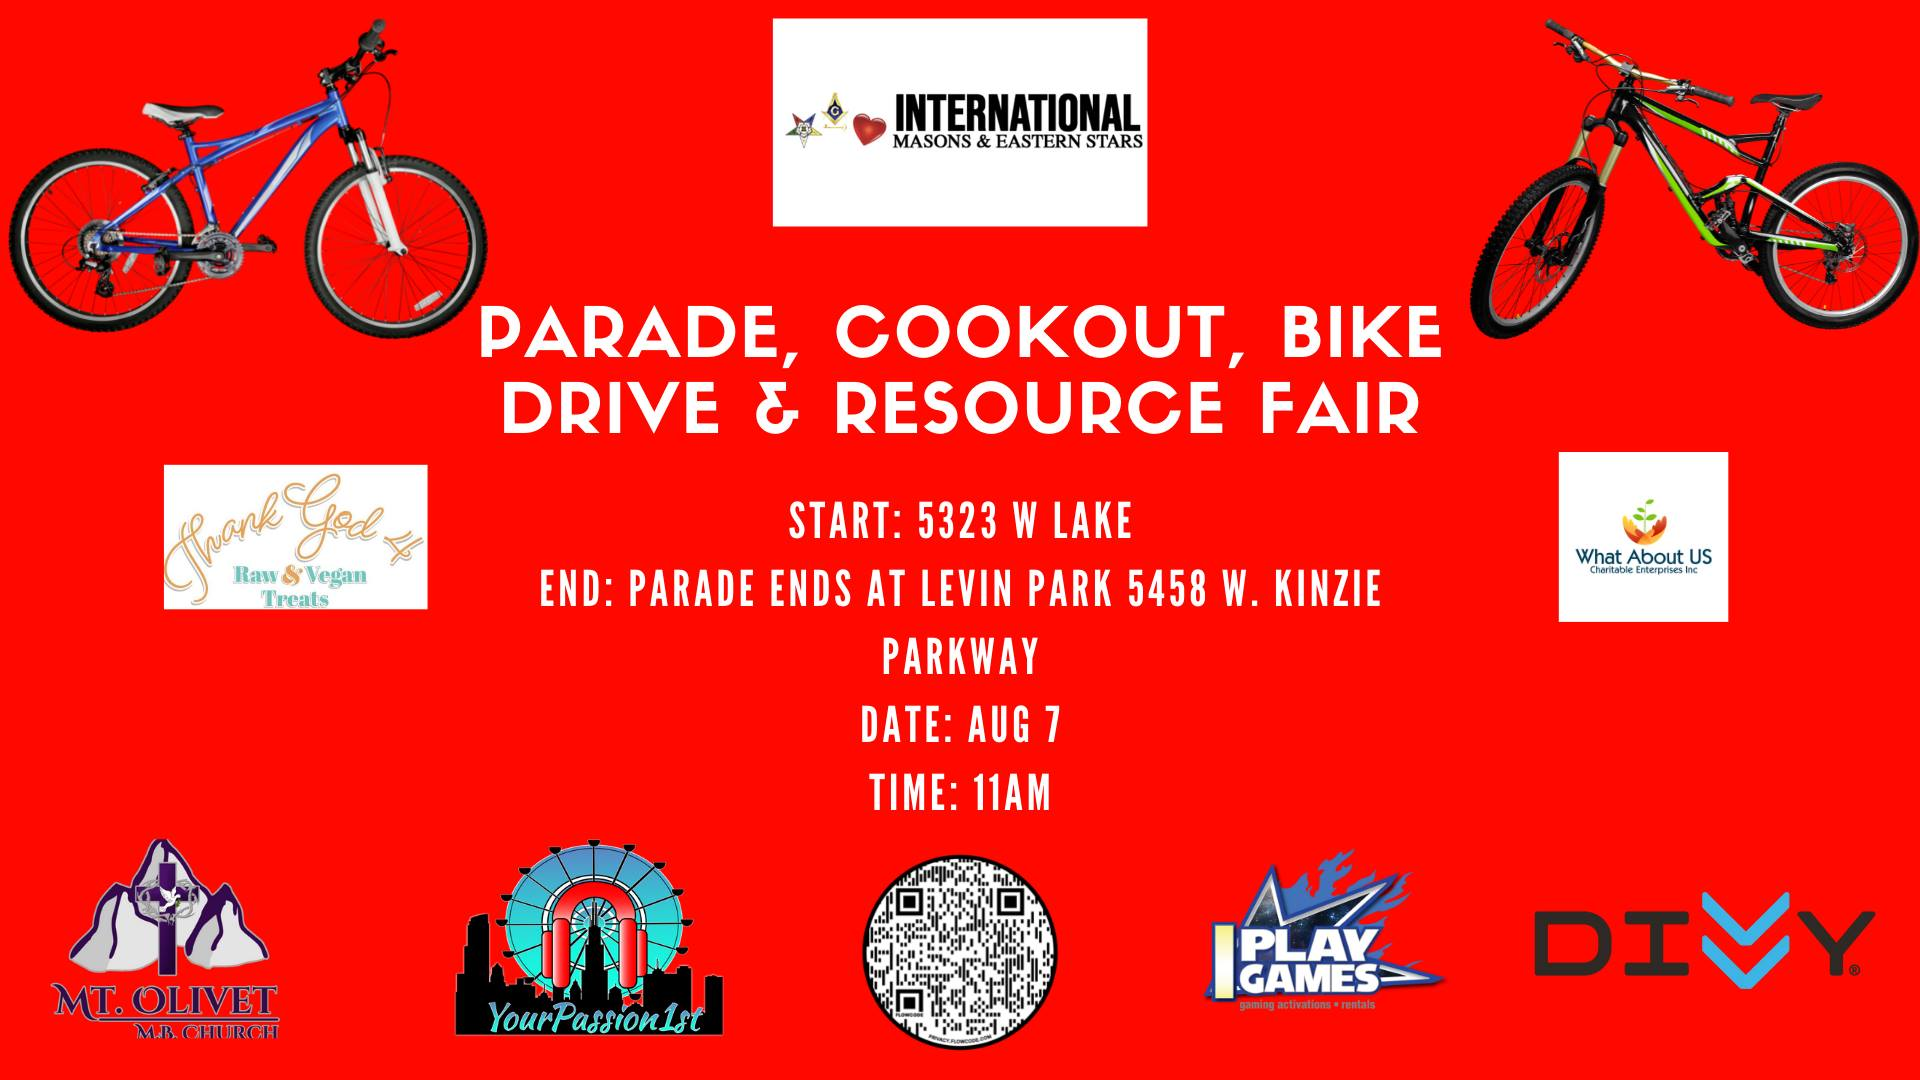 YourPassion1st Parade, Cookout, Bike Drive & Resource Fair